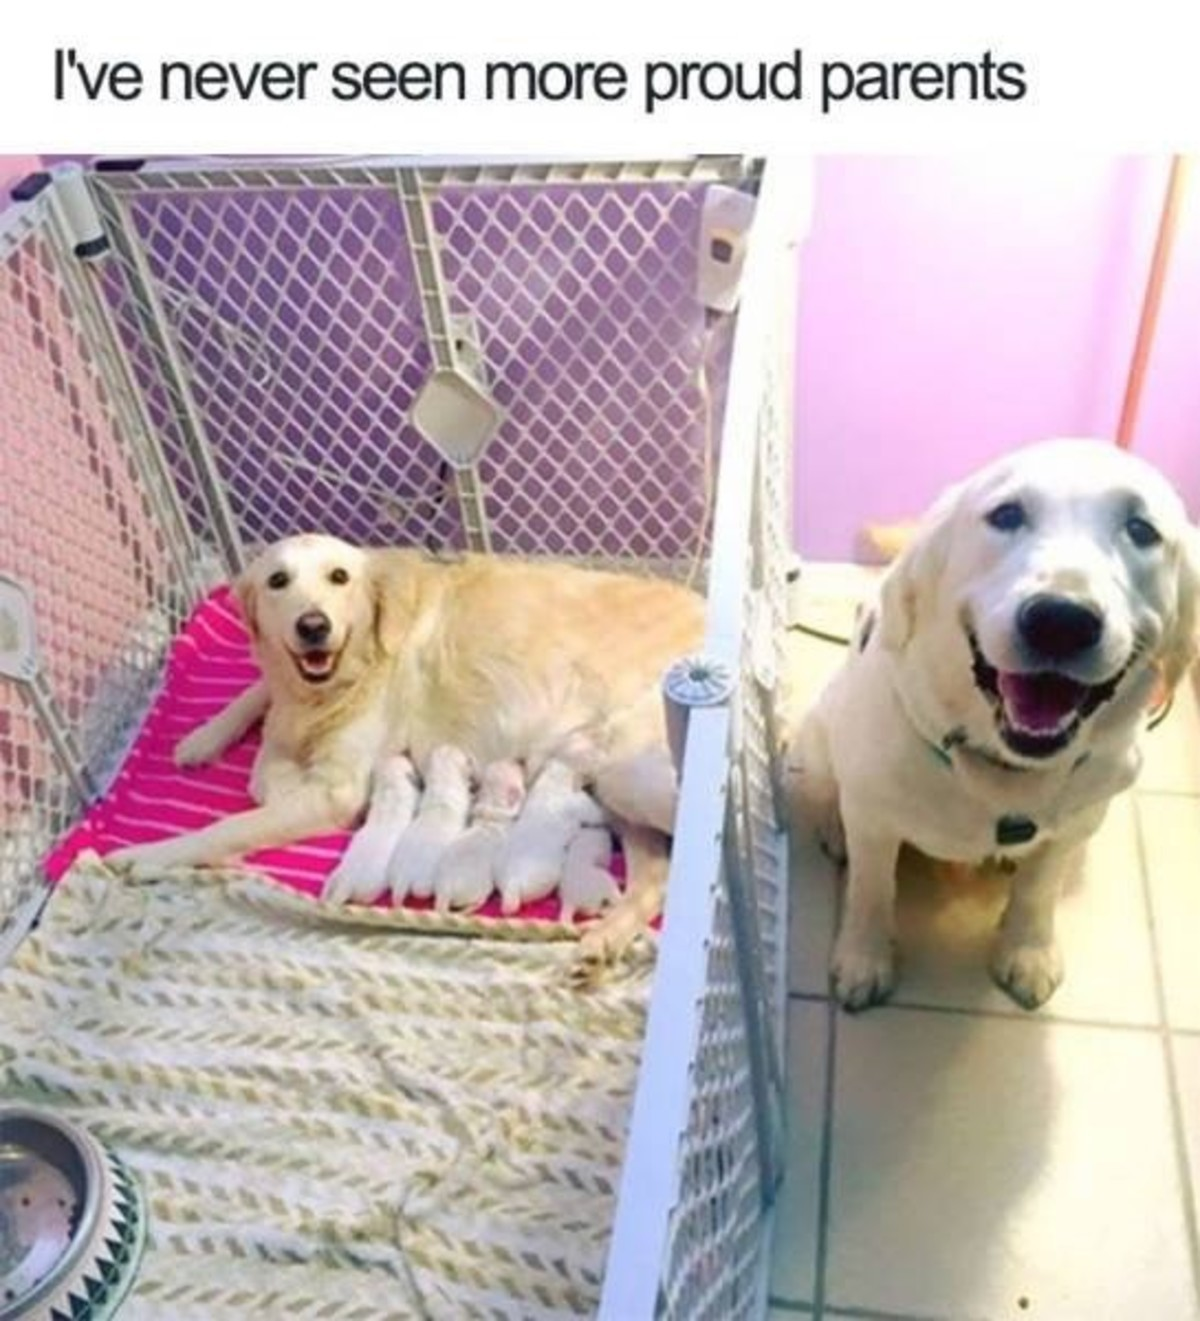 """Proud parents. .. """"I was a good boy, and I love my good girl, and then MORE good boys just appeared. ISNT THAT SO COOL HOOMAN?"""""""